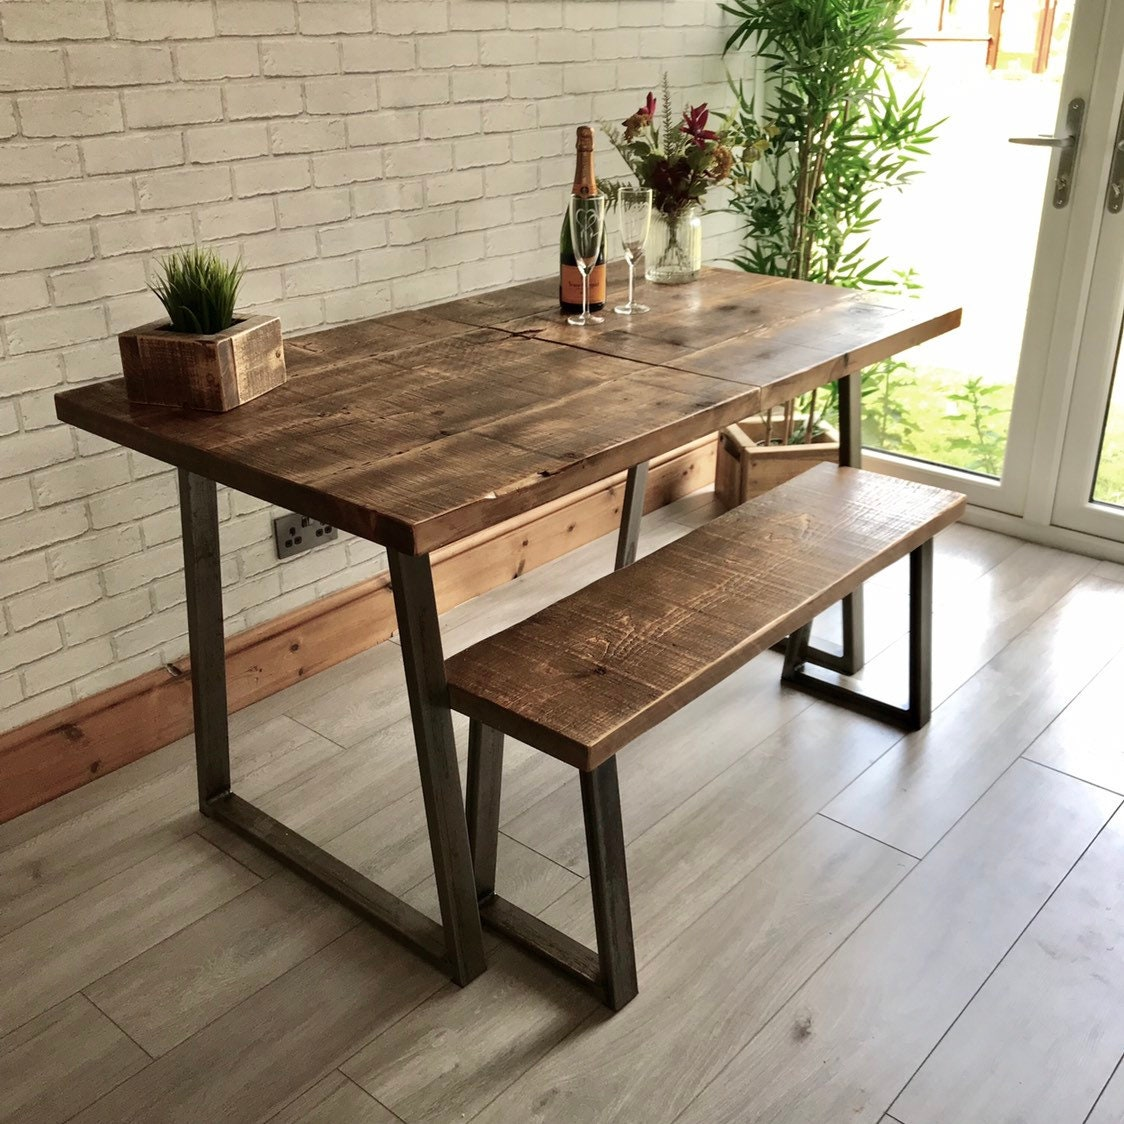 Sensational Extending Industrial Dining Table And Bench Package With Home Interior And Landscaping Eliaenasavecom